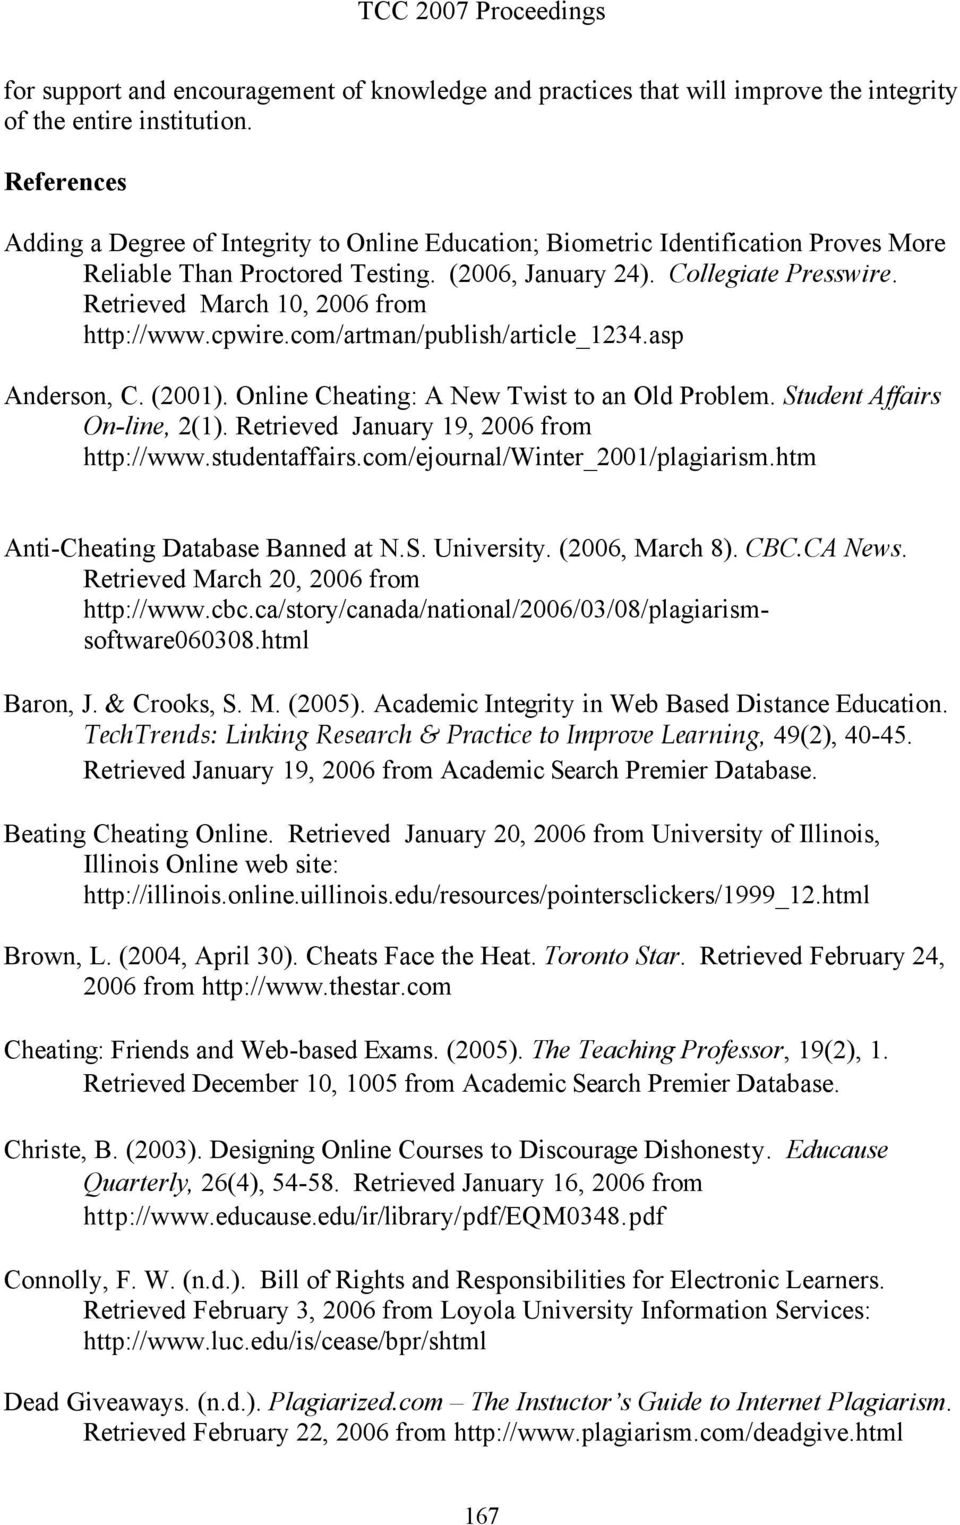 Retrieved March 10, 2006 from http://www.cpwire.com/artman/publish/article_1234.asp Anderson, C. (2001). Online Cheating: A New Twist to an Old Problem. Student Affairs On-line, 2(1).